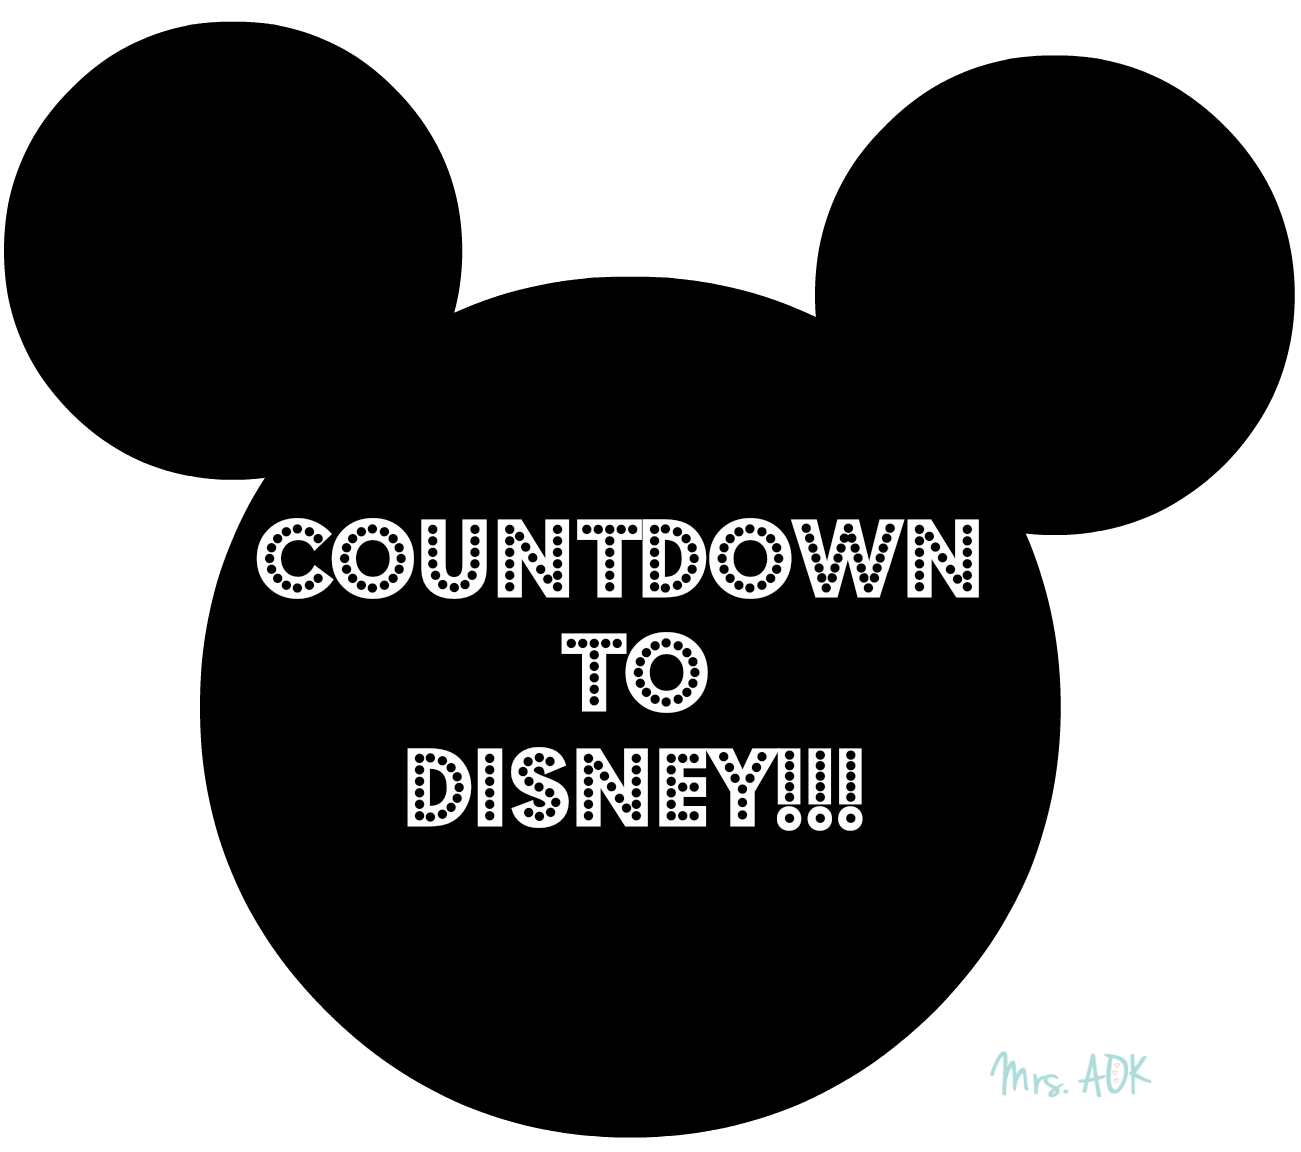 Intro to my #WDW Series & Countdown to Disney Printable - Mrs. AOK, A ...